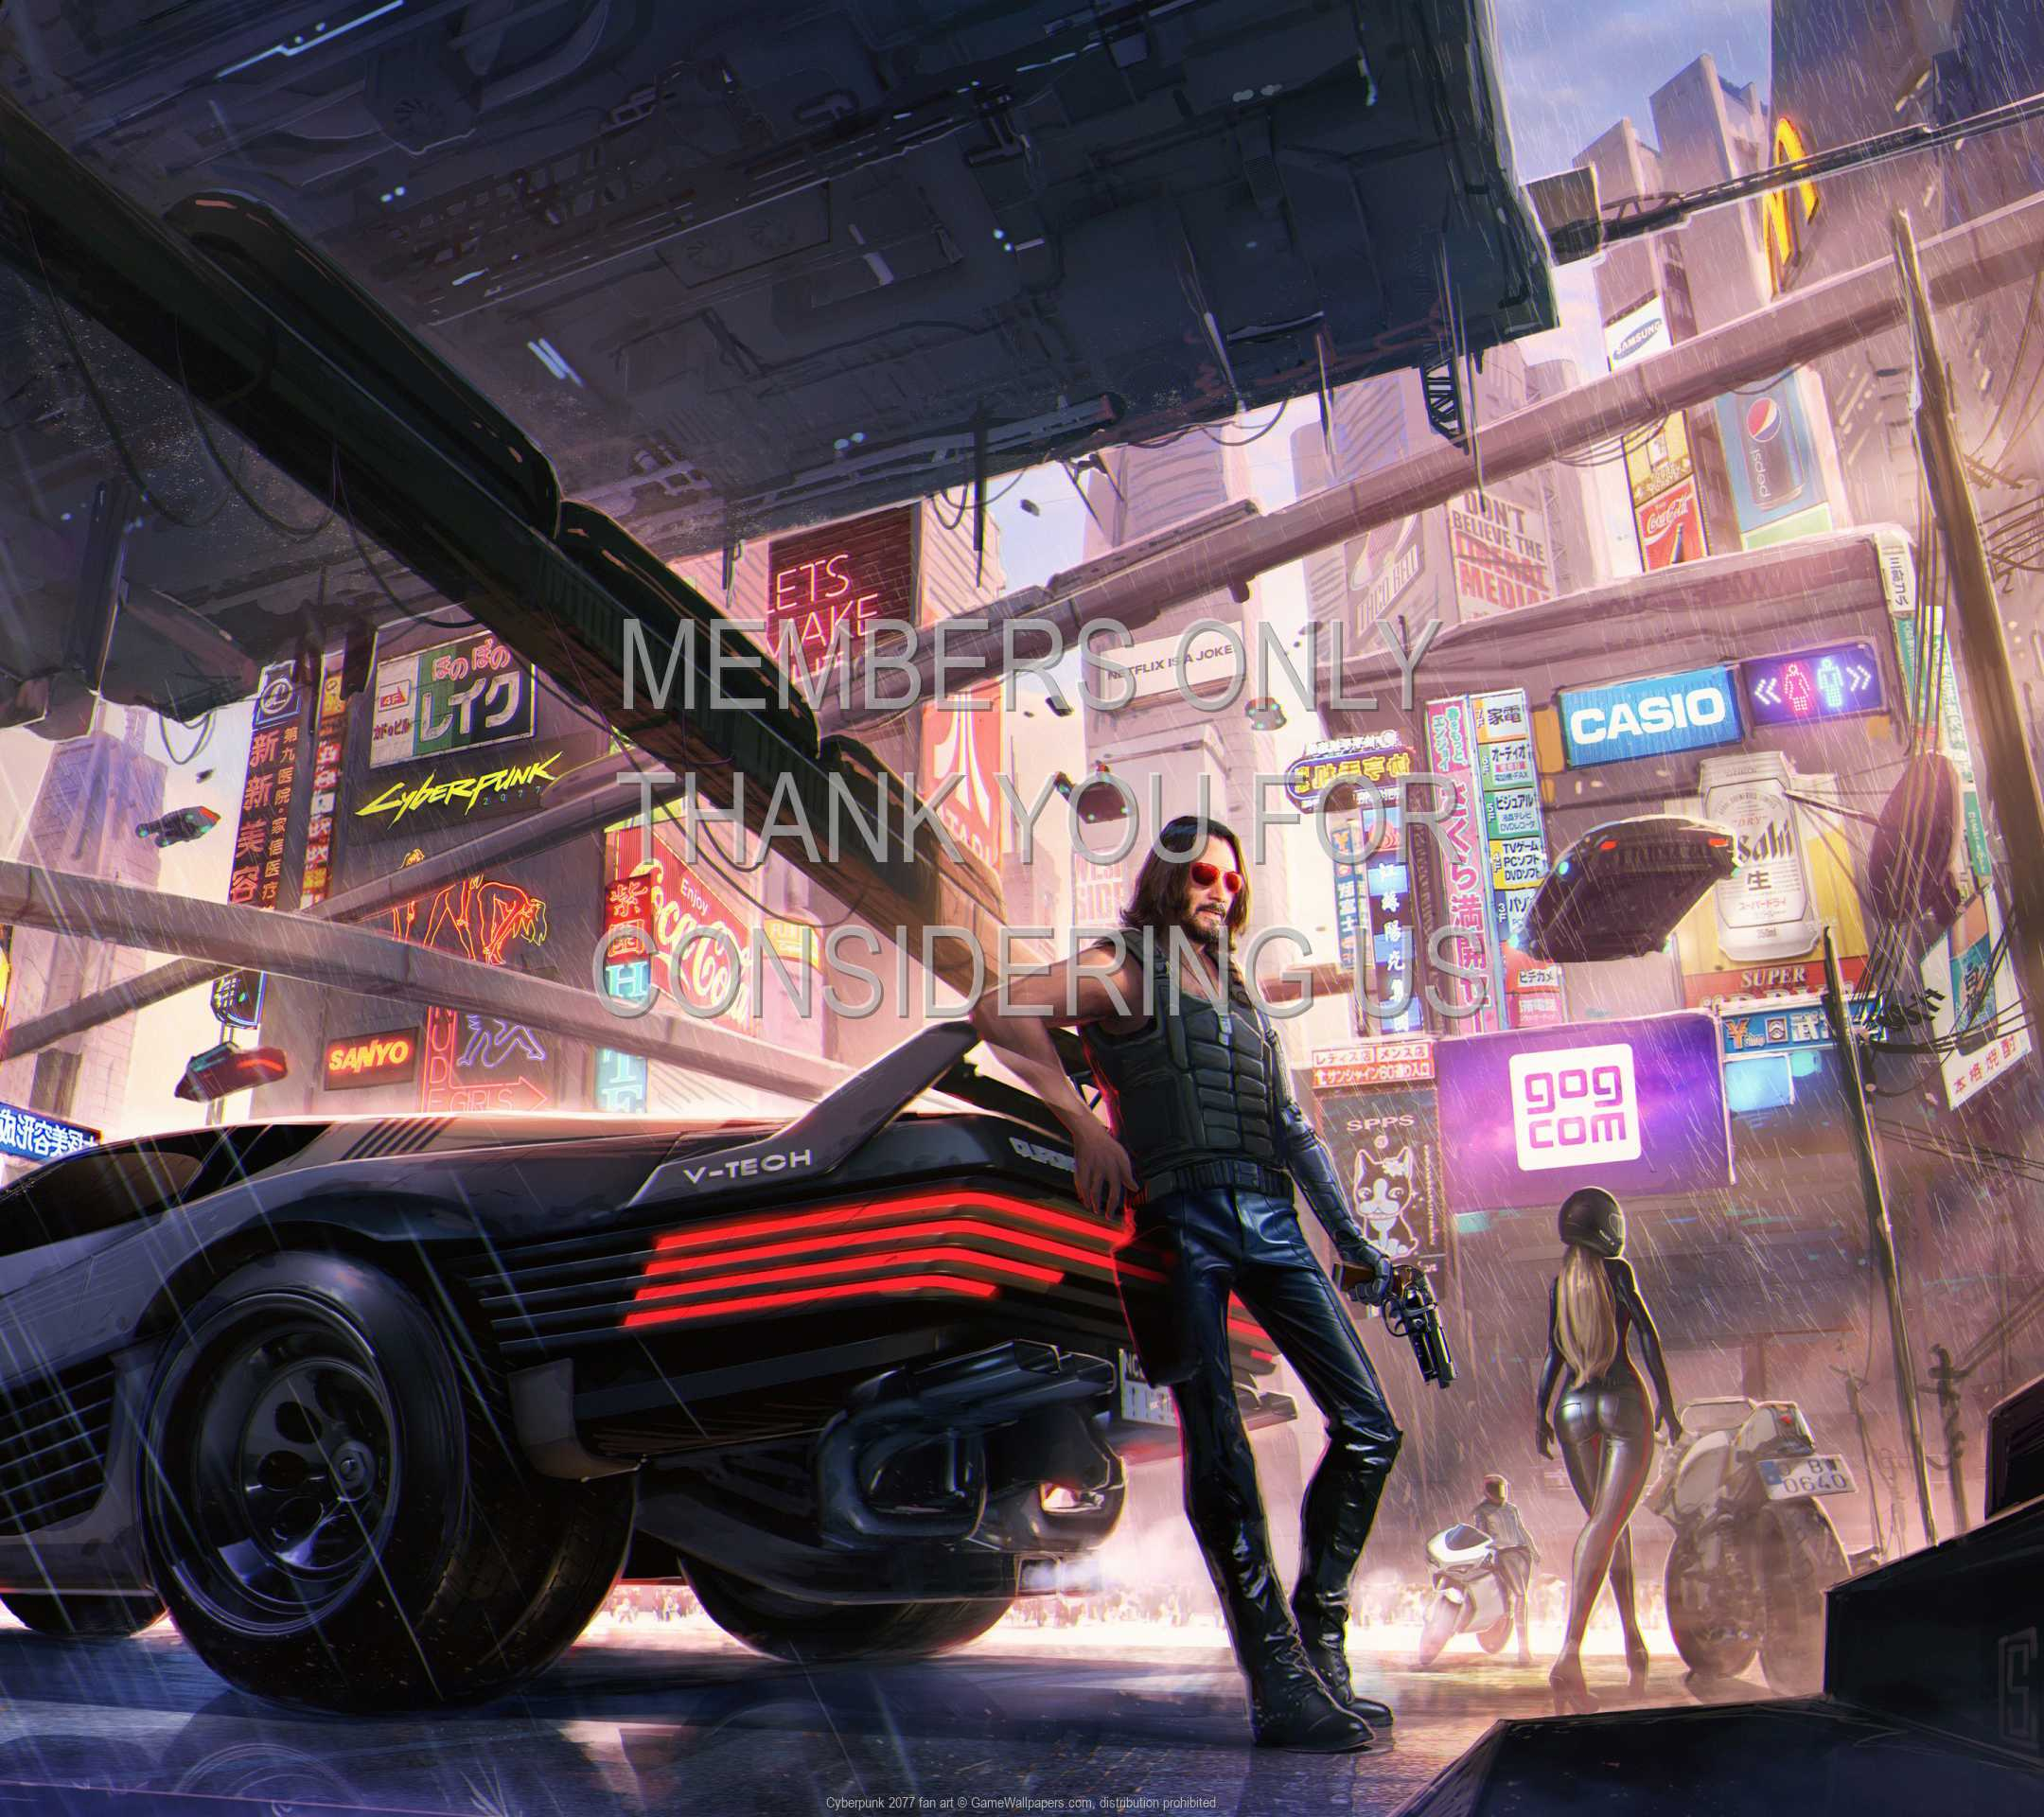 Cyberpunk 2077 fan art 1080p Horizontal Mobile wallpaper or background 04